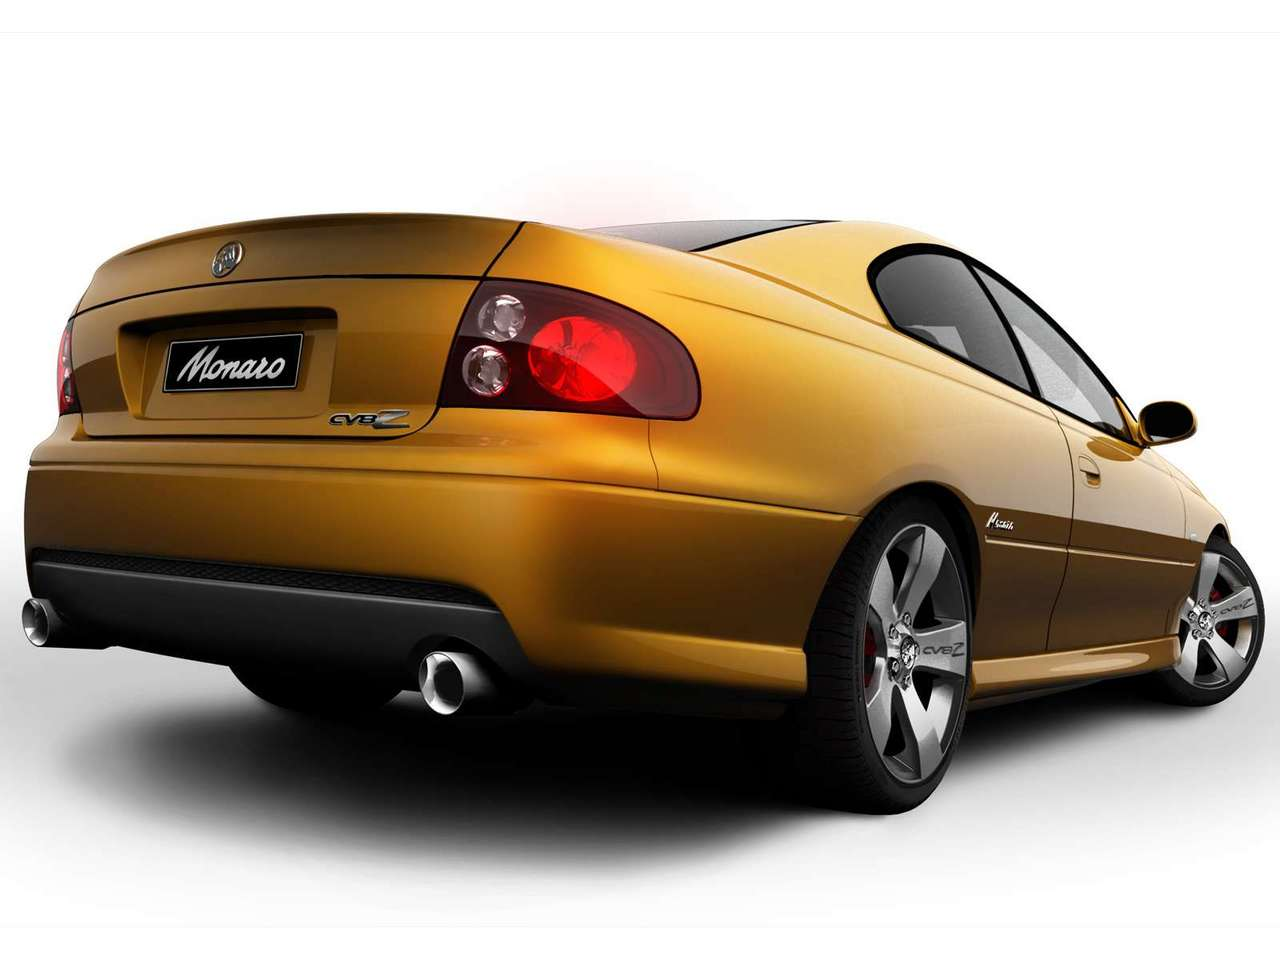 What Is The Fastest Production Car In The World >> Friday, November 20, 2009